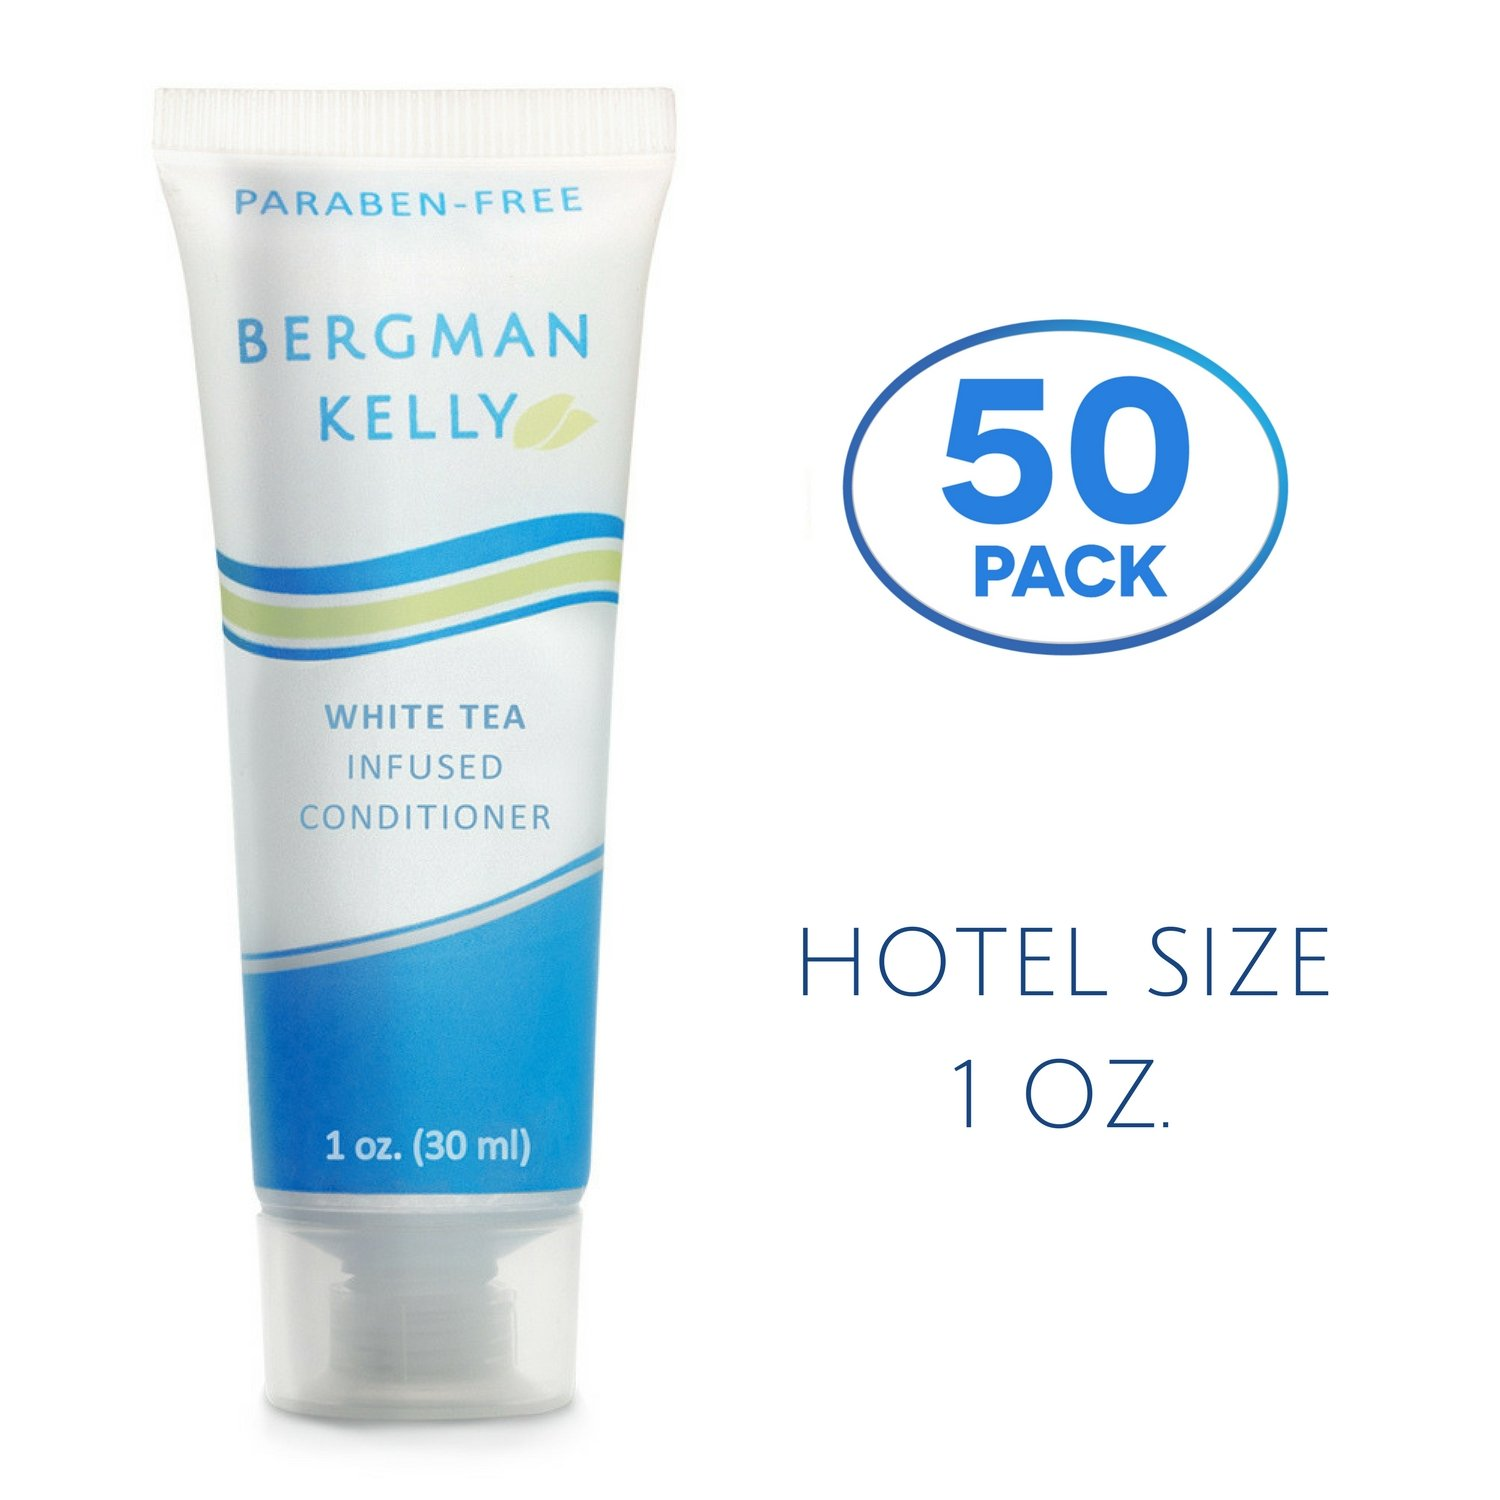 BERGMAN KELLY Hotel Conditioner, Hotel Toiletries Bulk (50 Pack, 1 Fl Oz) Travel Size Conditioner Amenities for Guest Hospitality, Motel, AirBnB, Gym, Rental; Luxury Conditioner for Guest Bathroom